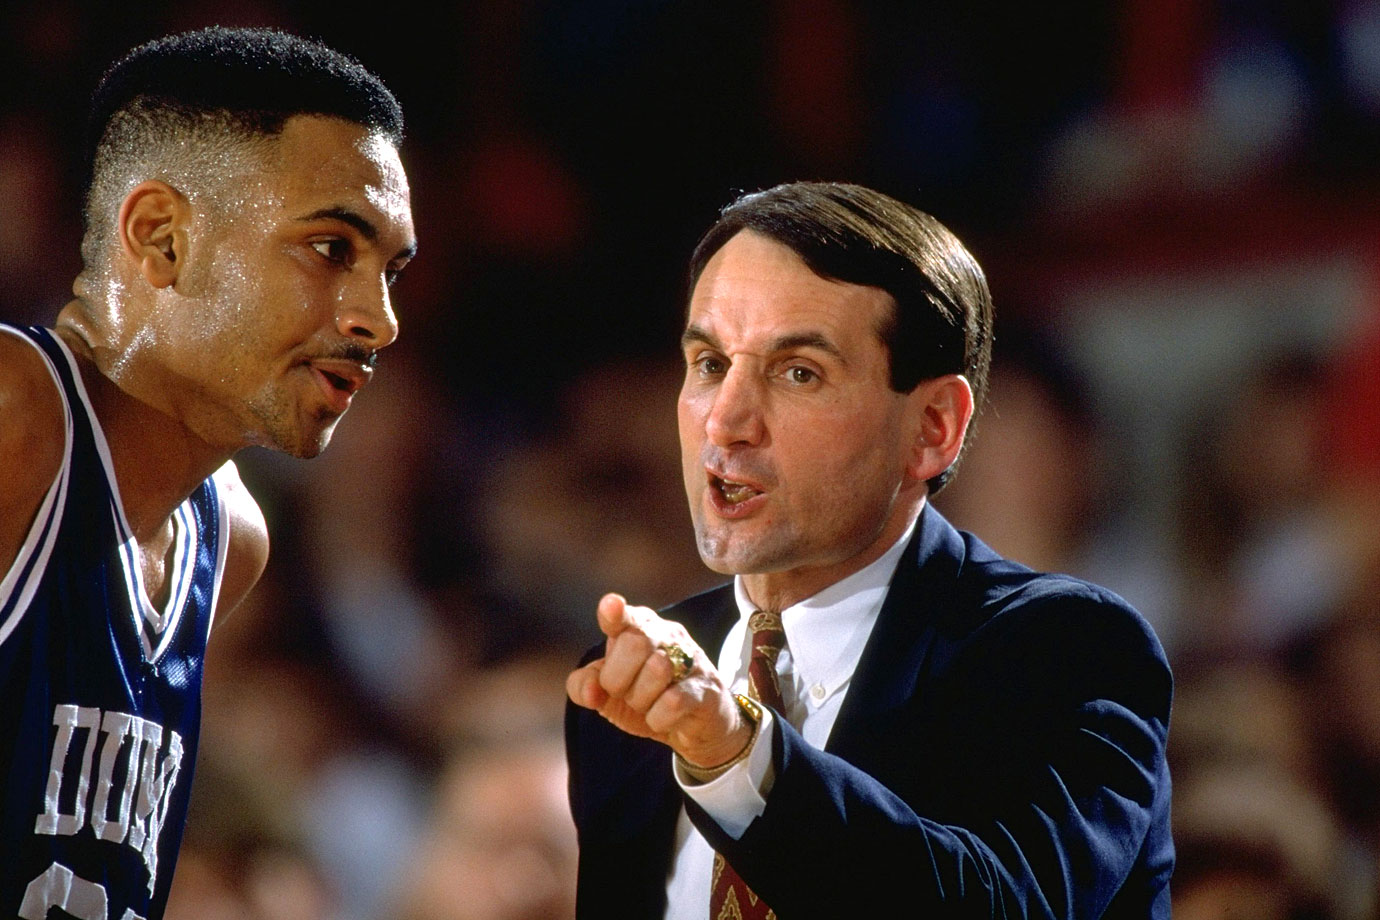 Mike Krzyzewski instructs Grant Hill during a game against NC State in 1992.  In the '92 championship against Kentucky, an unguarded Hill heaved the in-bounds pass 75 feet across the court into the hands of Laettner, who made the game-winning jumper as time expired.